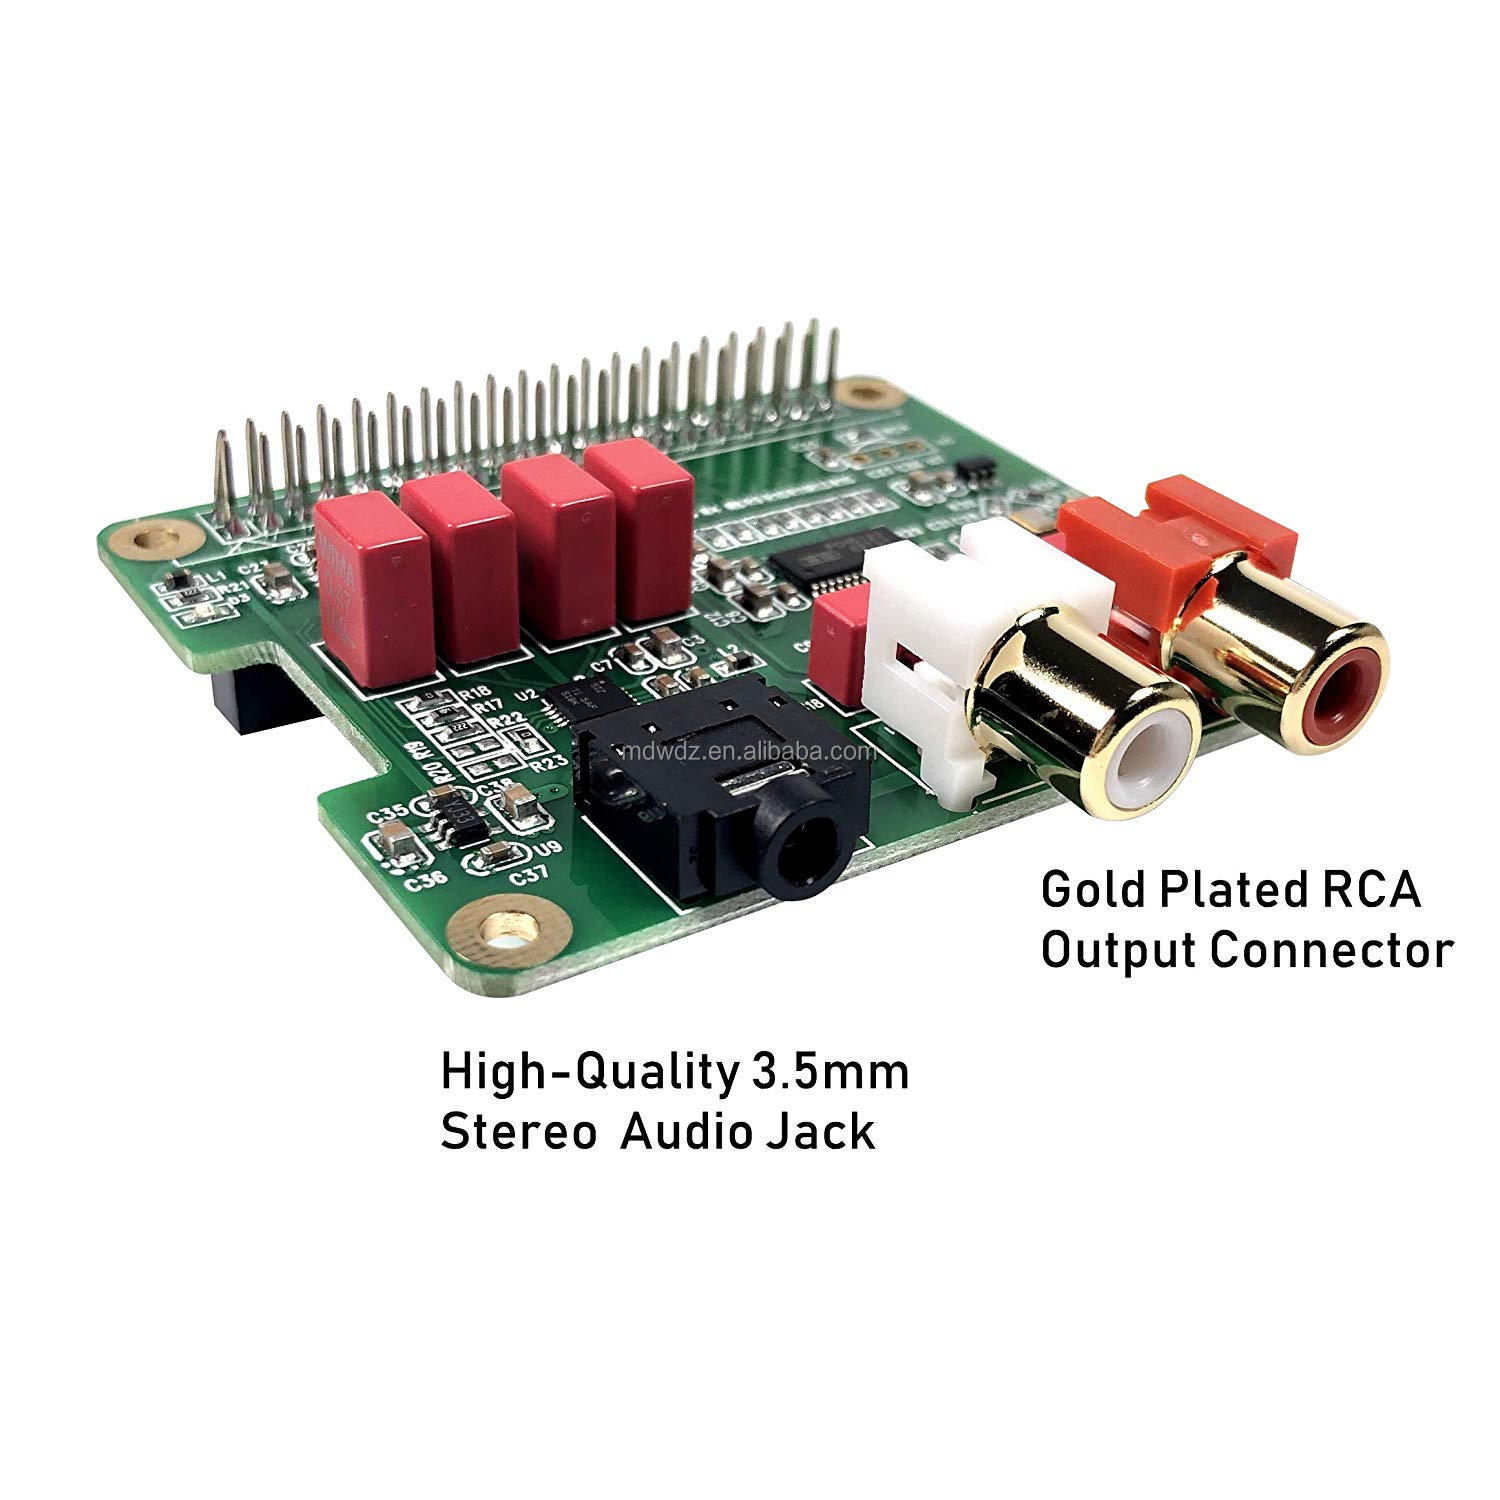 Raspberry Pi HiFi DAC HAT PCM5122 HiFi DAC Audio Card Expansion Board for Raspberry Pi 3 B+ Pi Zero etc. (DAC HAT)